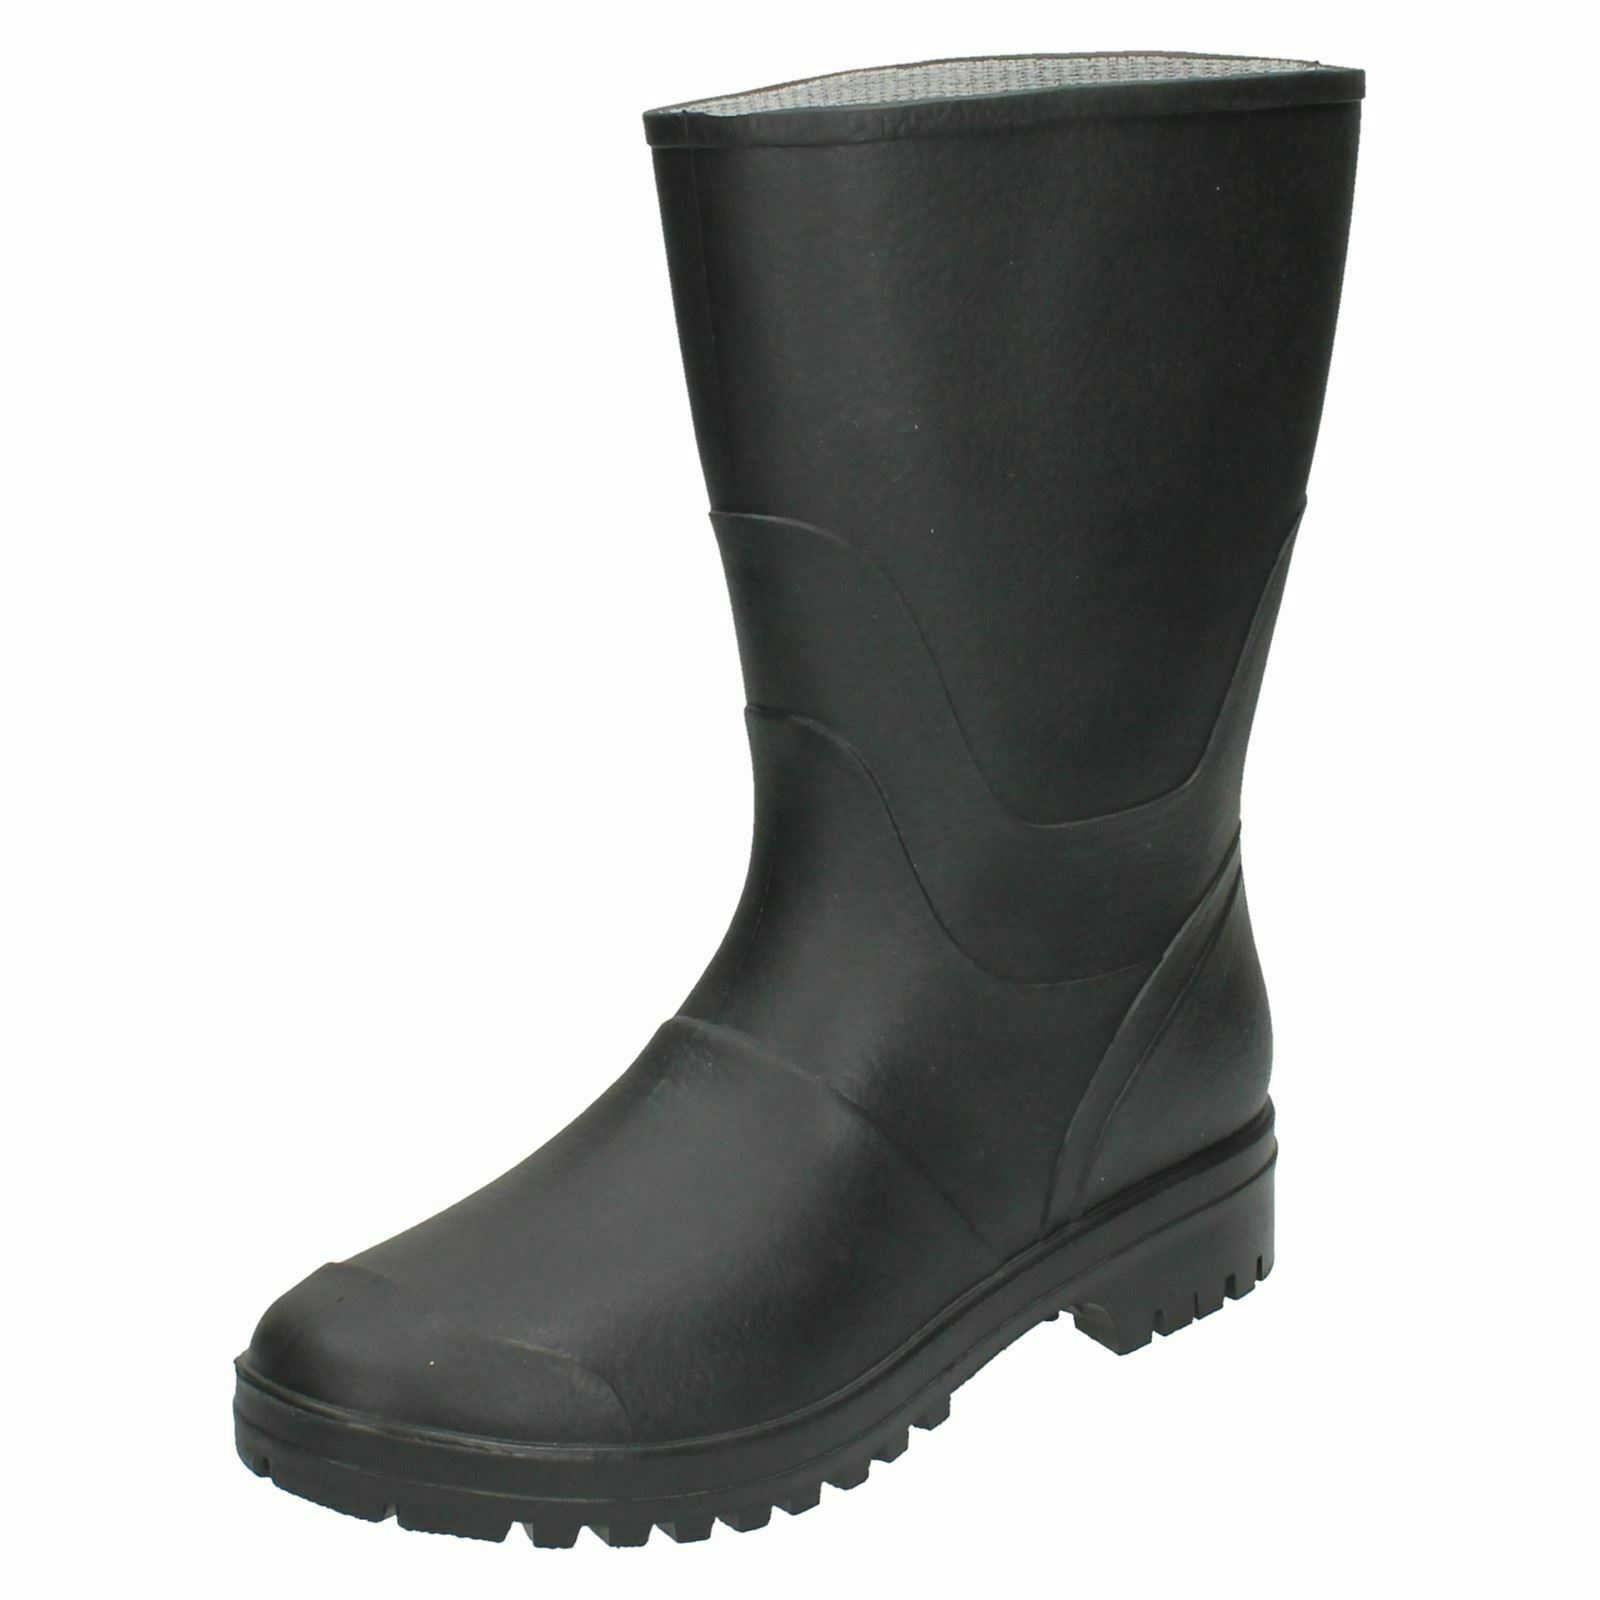 Mens Quilted Rain Wellies shoes Waterproof Rubber Pull-On work Mid-calf Boots